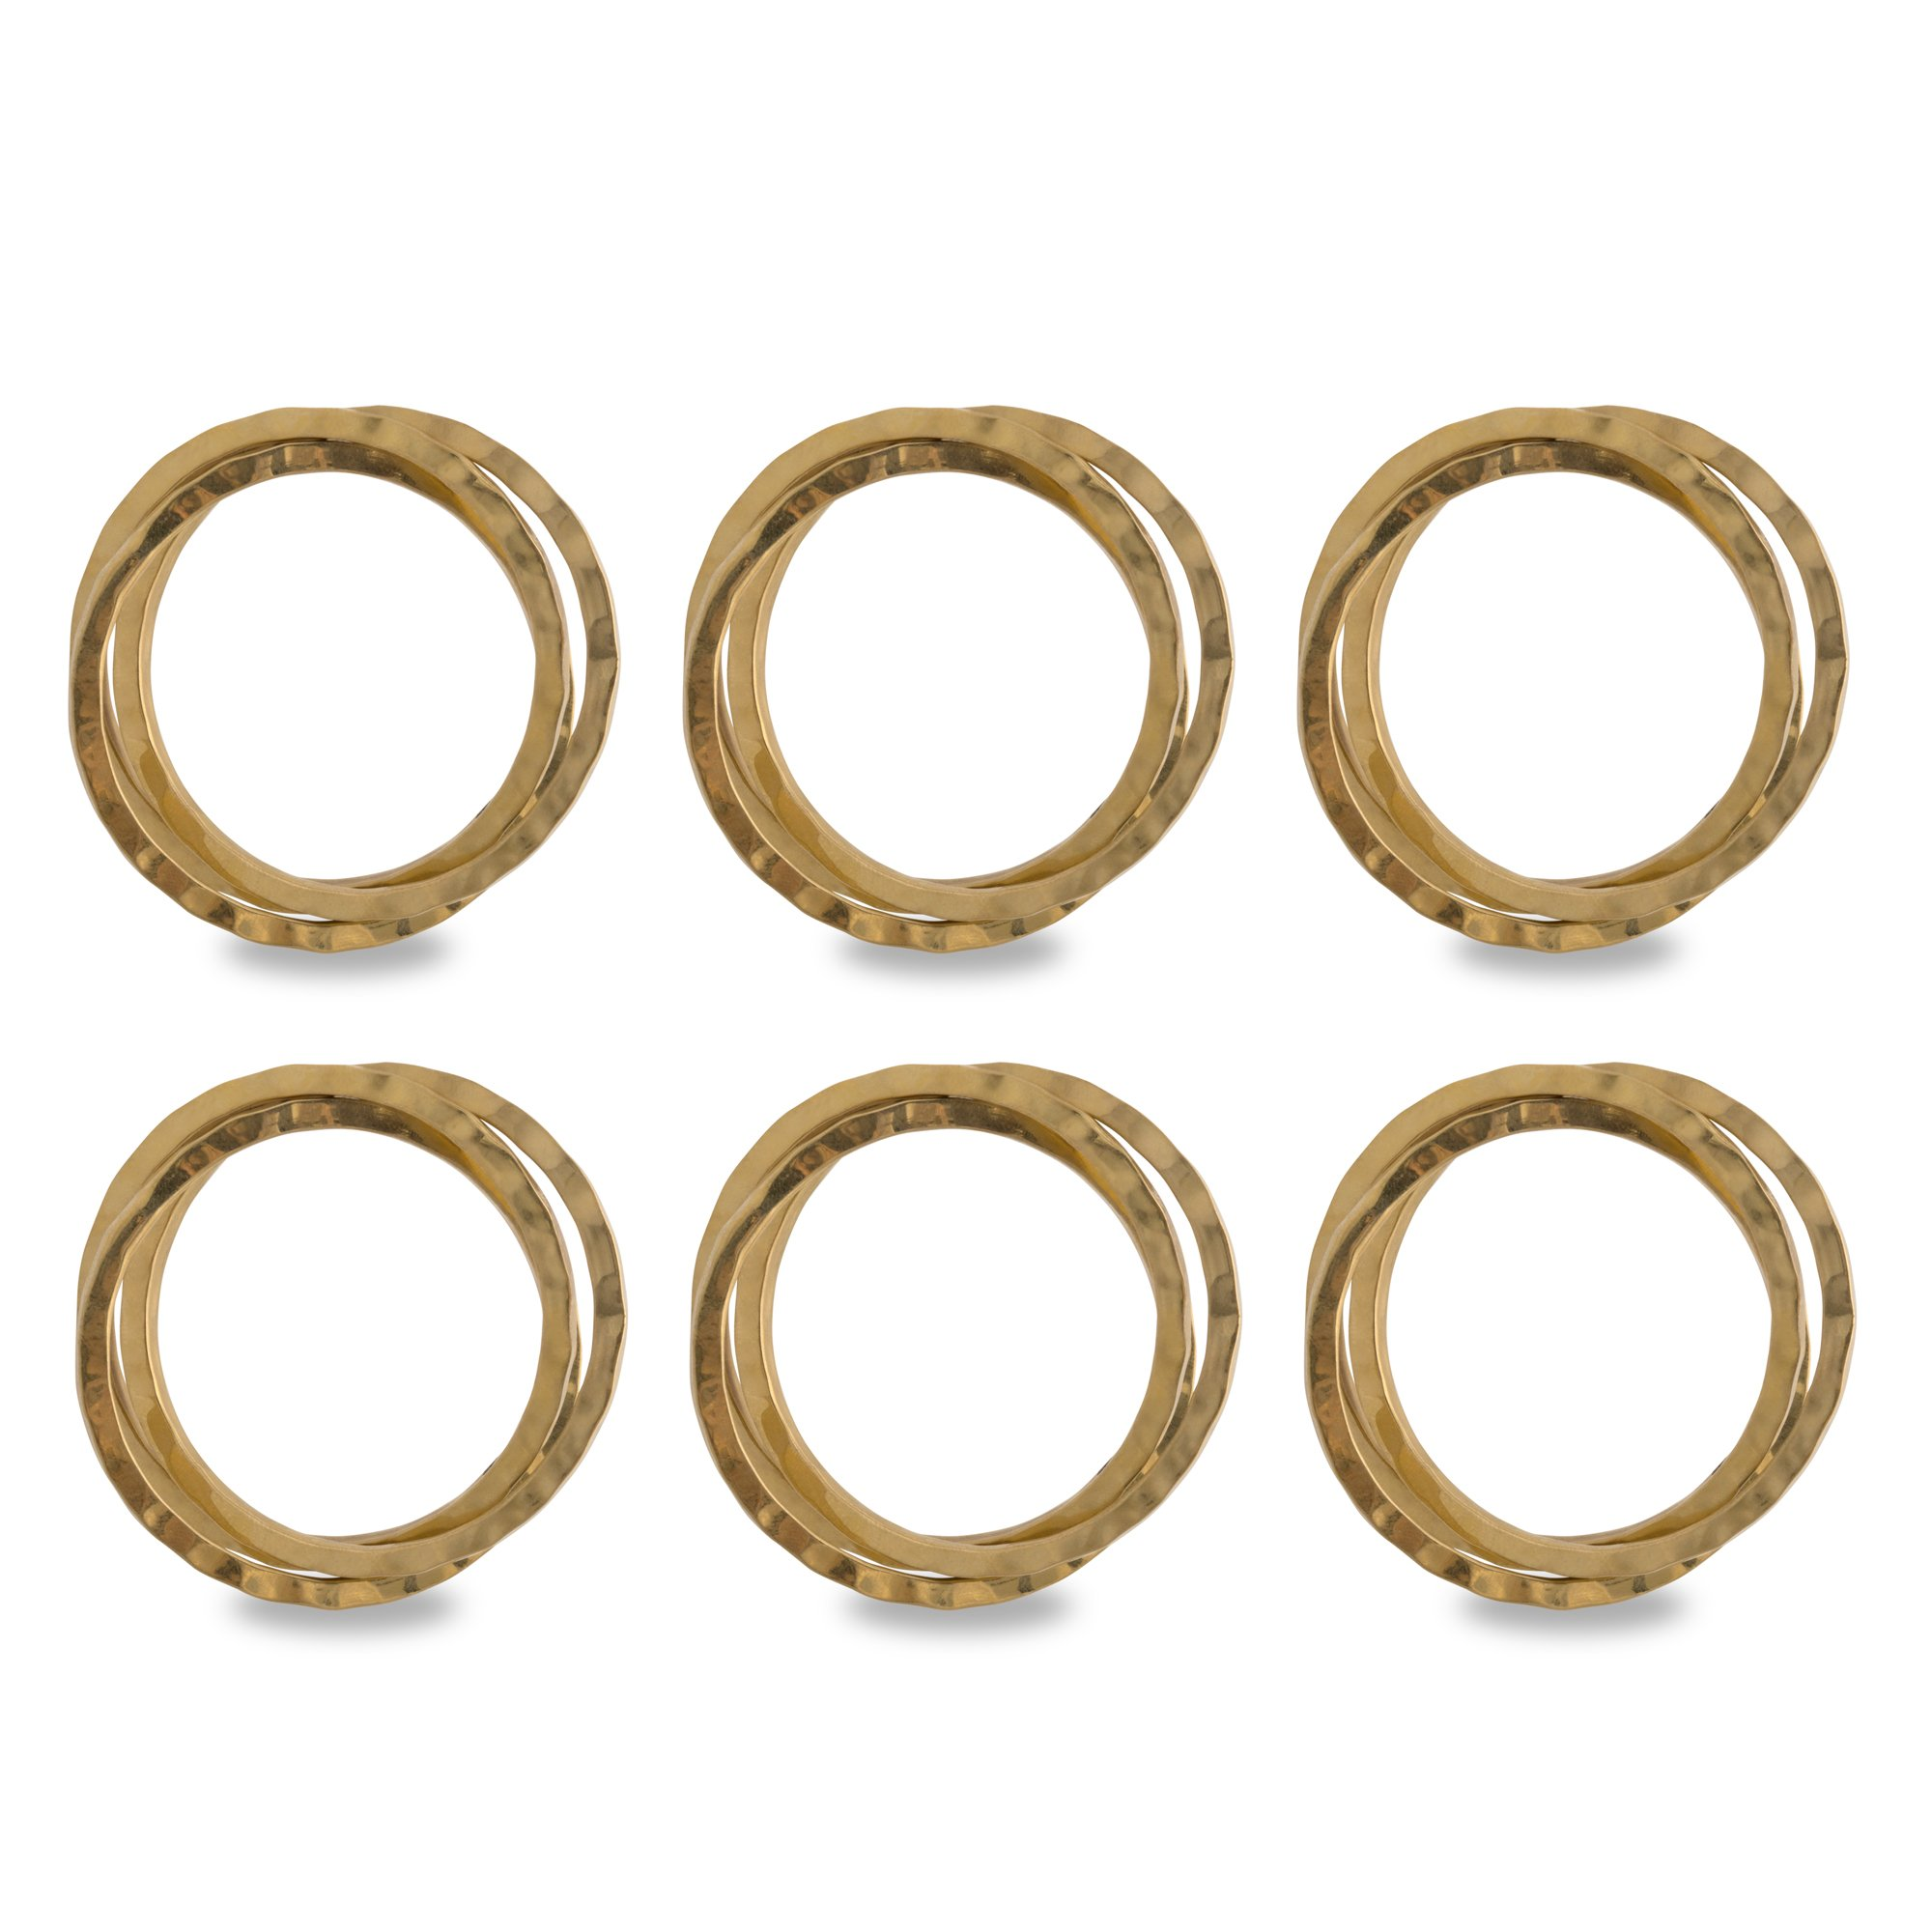 DII Napkin Rings for Family Dinners, Weddings, Outdoor Parties or Everyday Use - Gold Intertwined, Set of 6